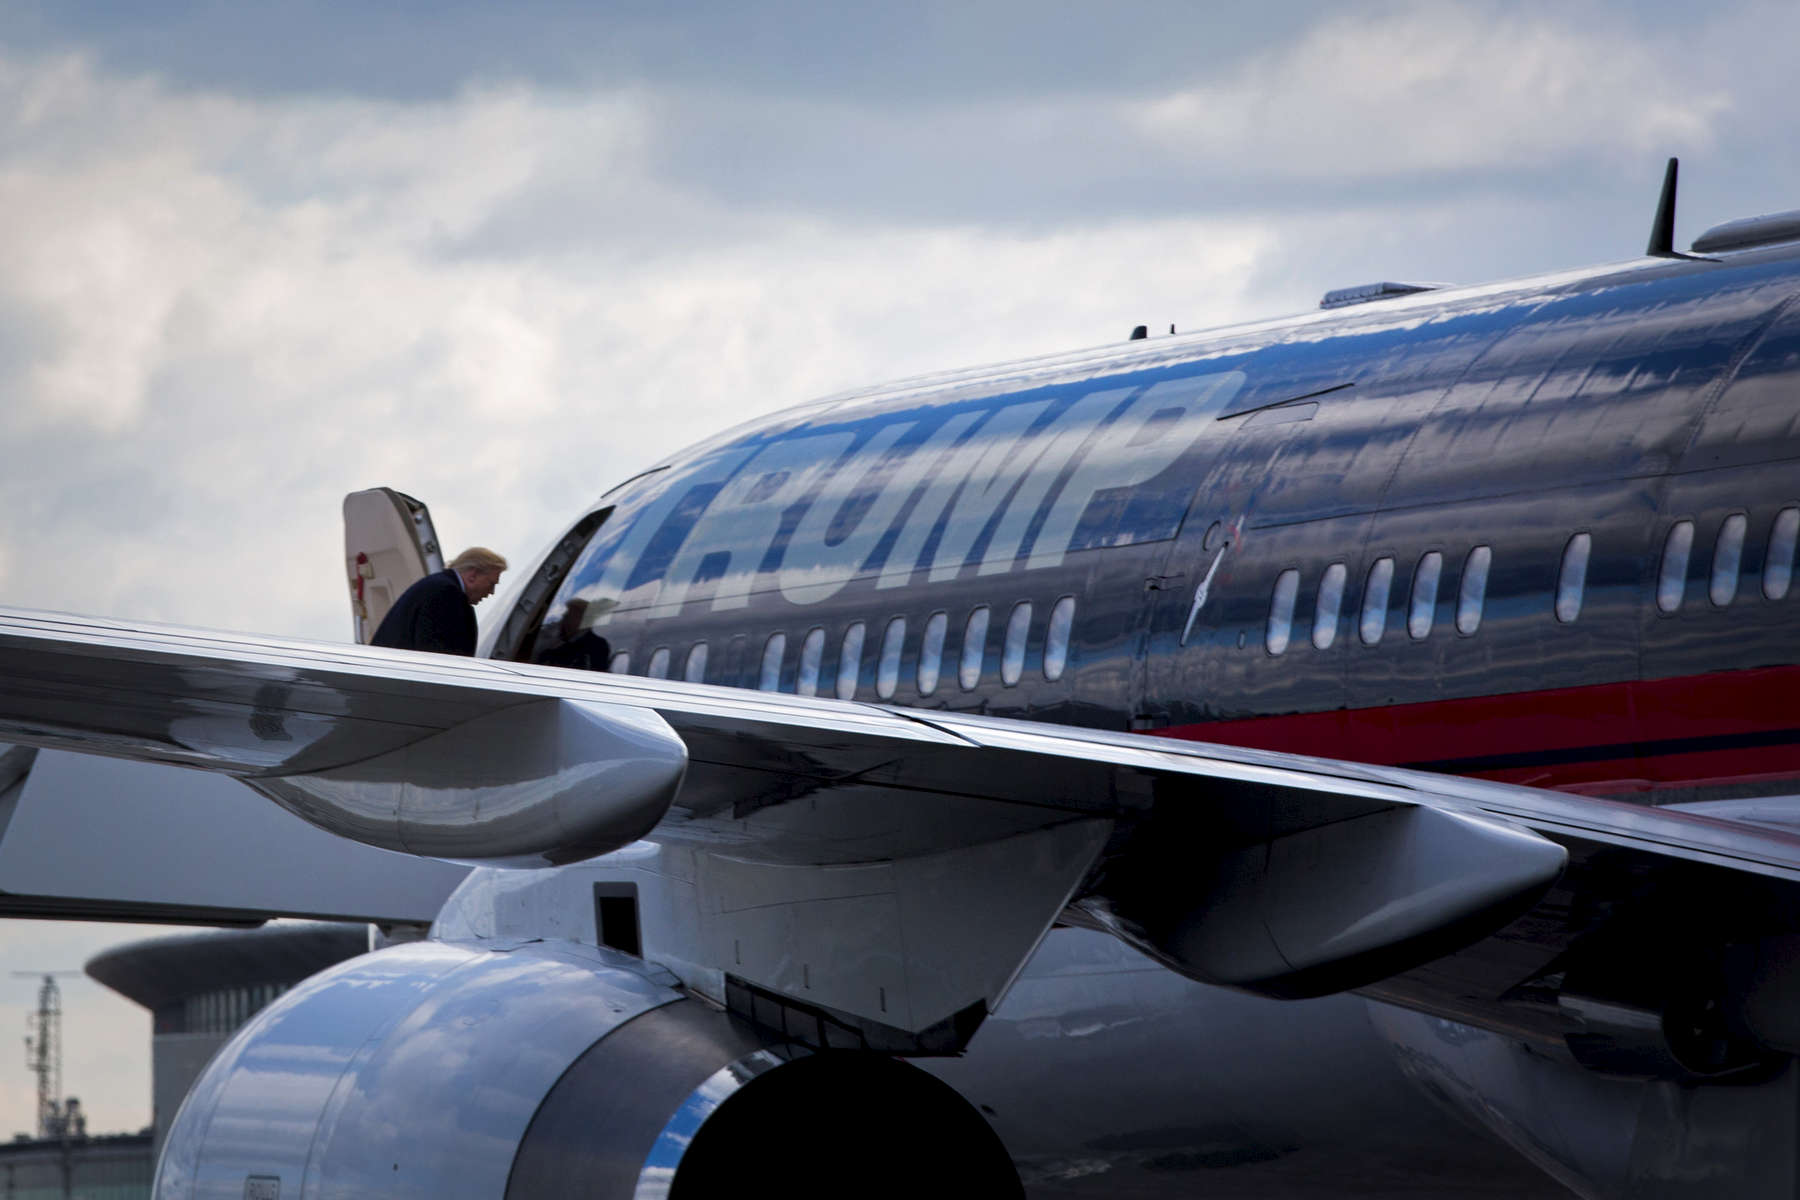 President-elect Donald Trump boards his private plane at LaGuardia Airport on Friday, Dec. 9, 2016, in New York. Trump is scheduled for rallies in Baton Rouge, La. and Grand Rapids, Mich. (AP Photo/Kevin Hagen)